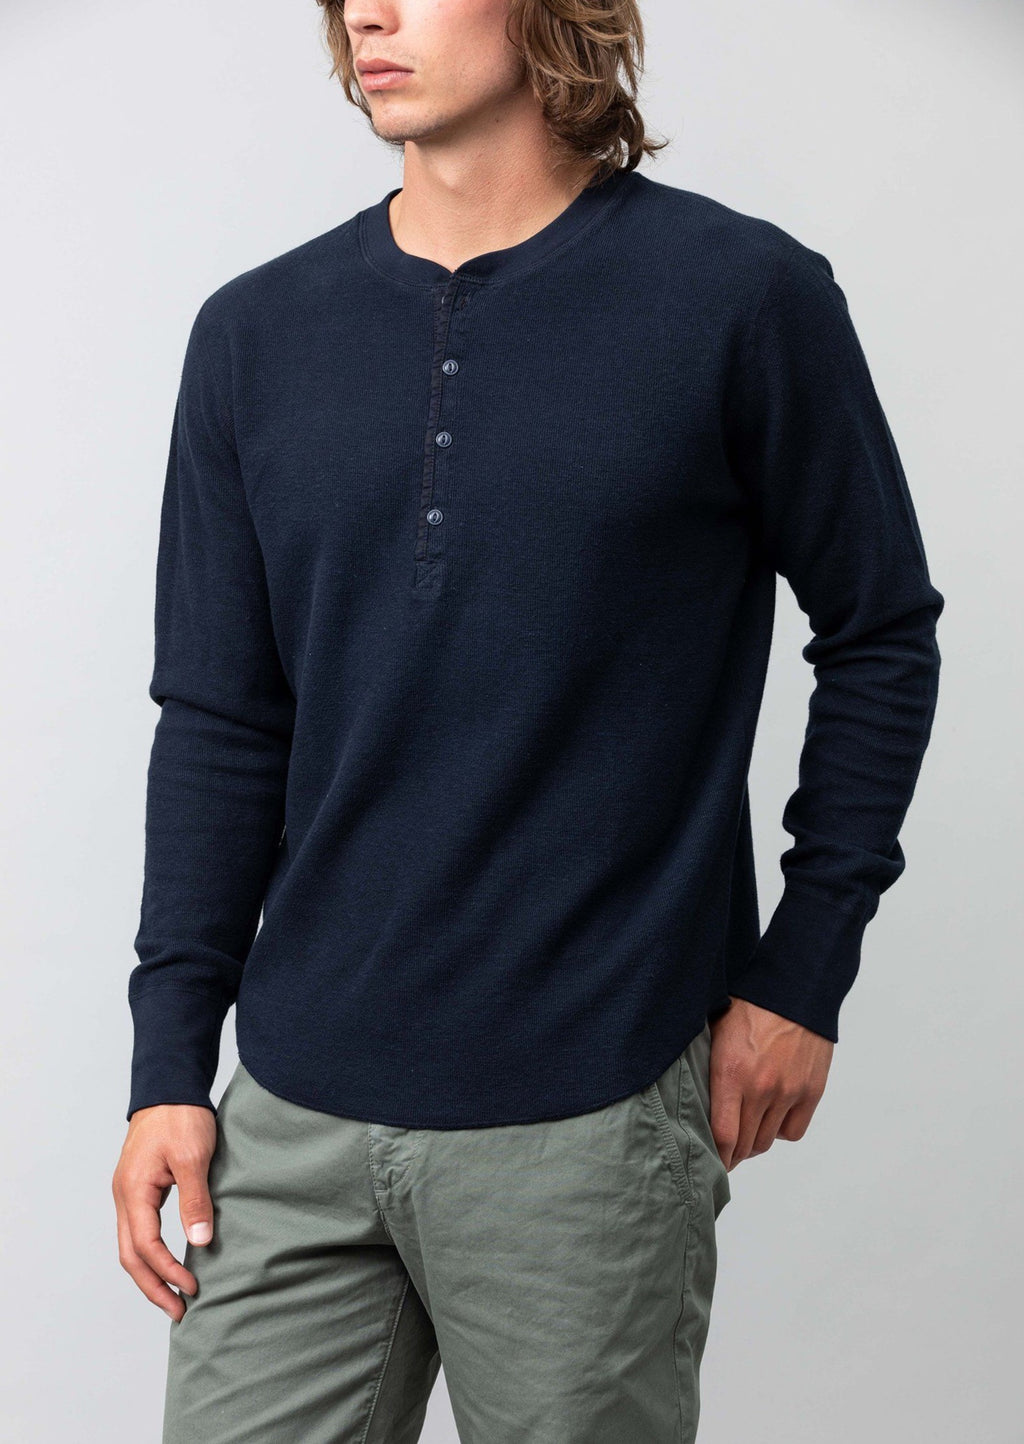 L/S Thermal Pointelle Henley